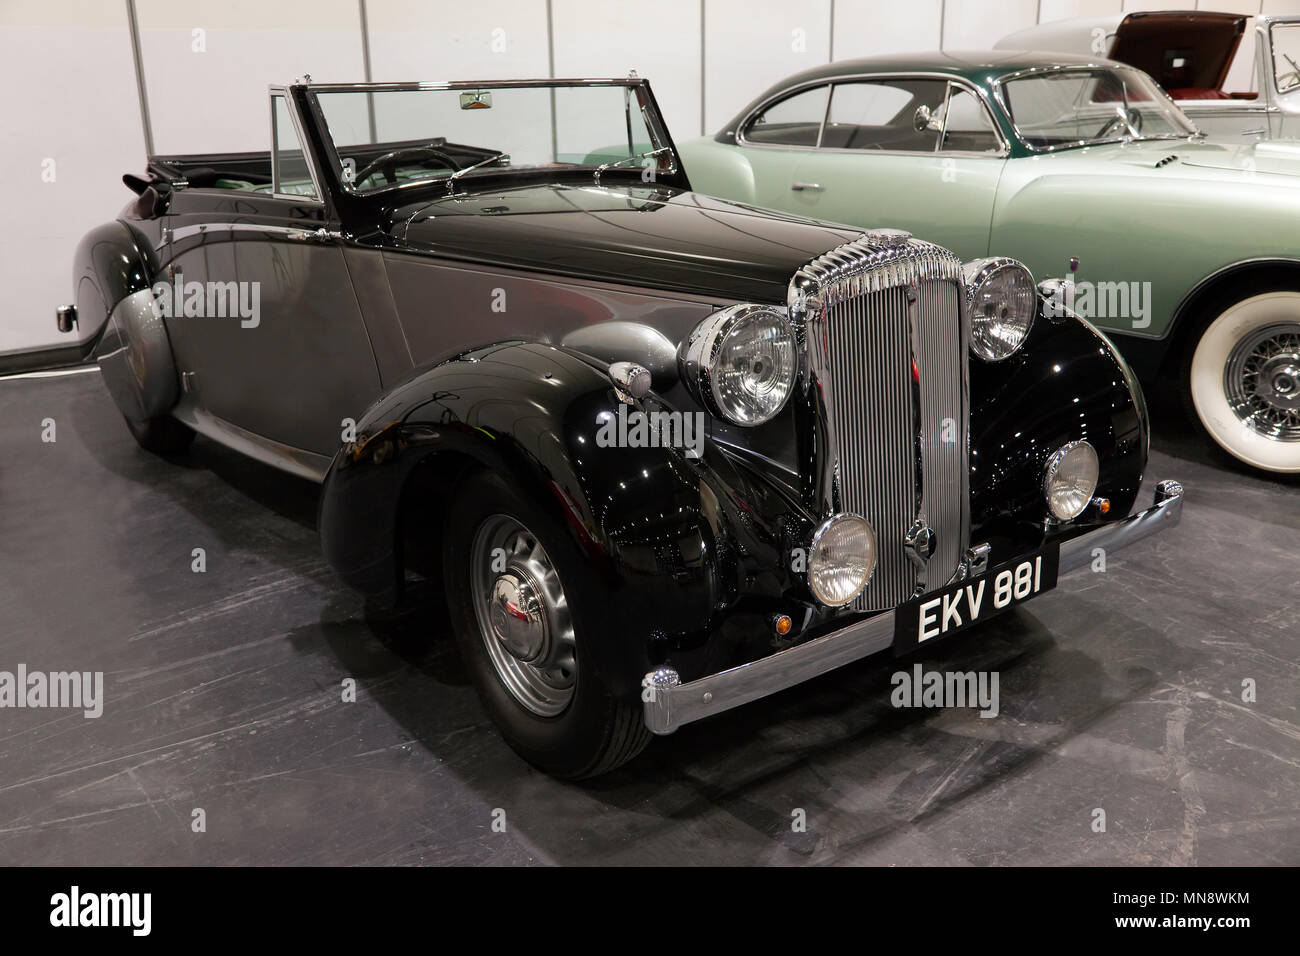 Winston Churchill's  1939  Daimler DB18 Drophead Coupe by Carlton, in the Paddock area of the 2018 London Classic Car Show Stock Photo